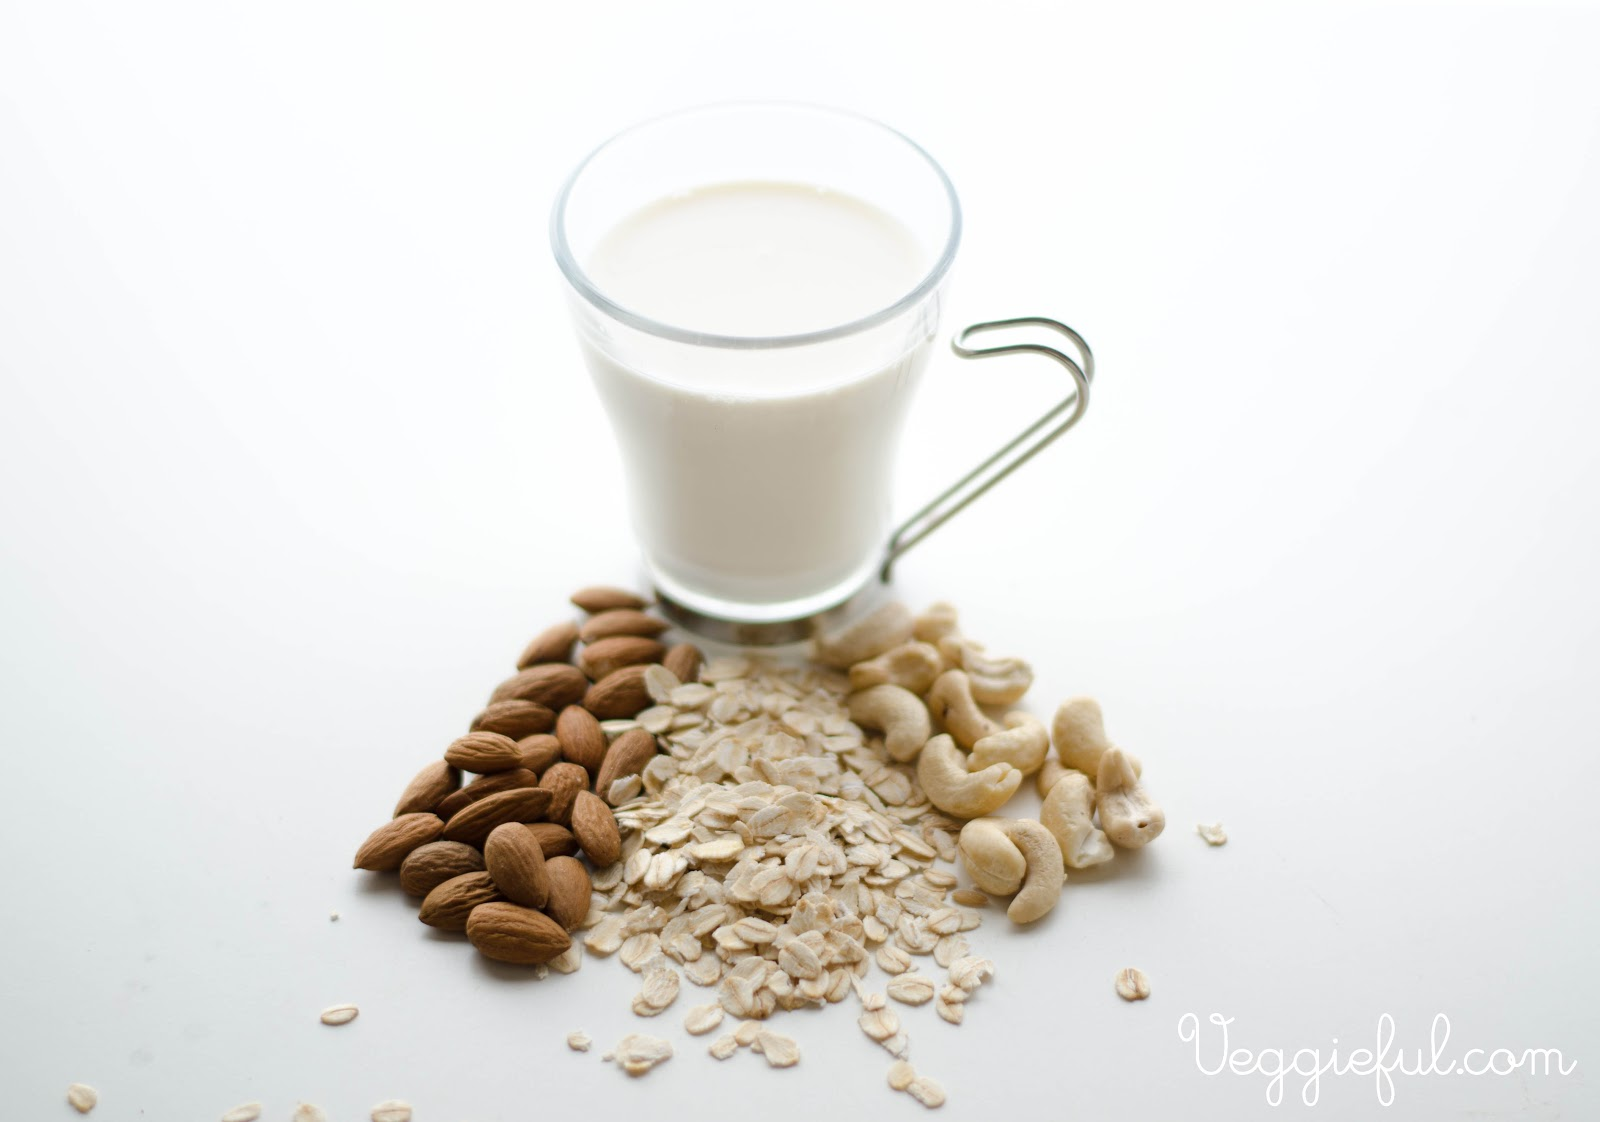 vegan alternatives to dairy products